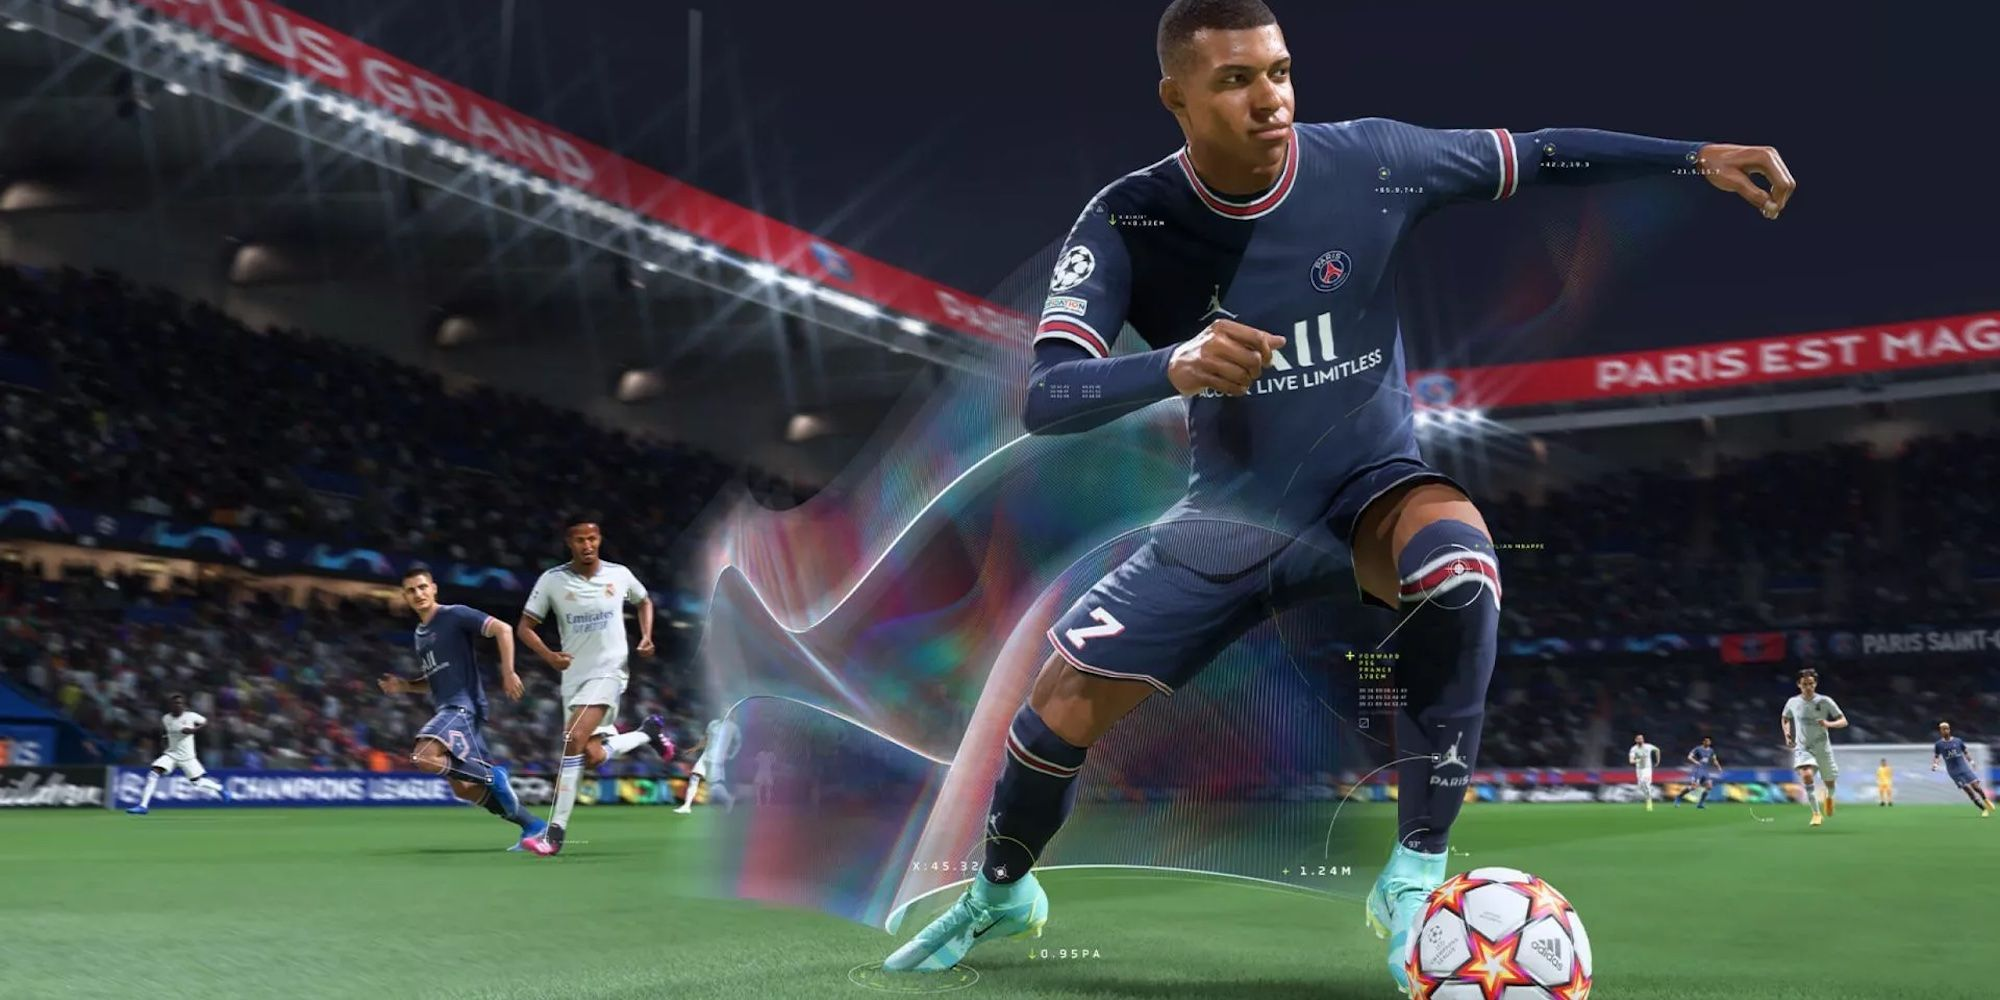 Extra EA Sports activities Video games Could Go Free-To-Play After FIFA 22